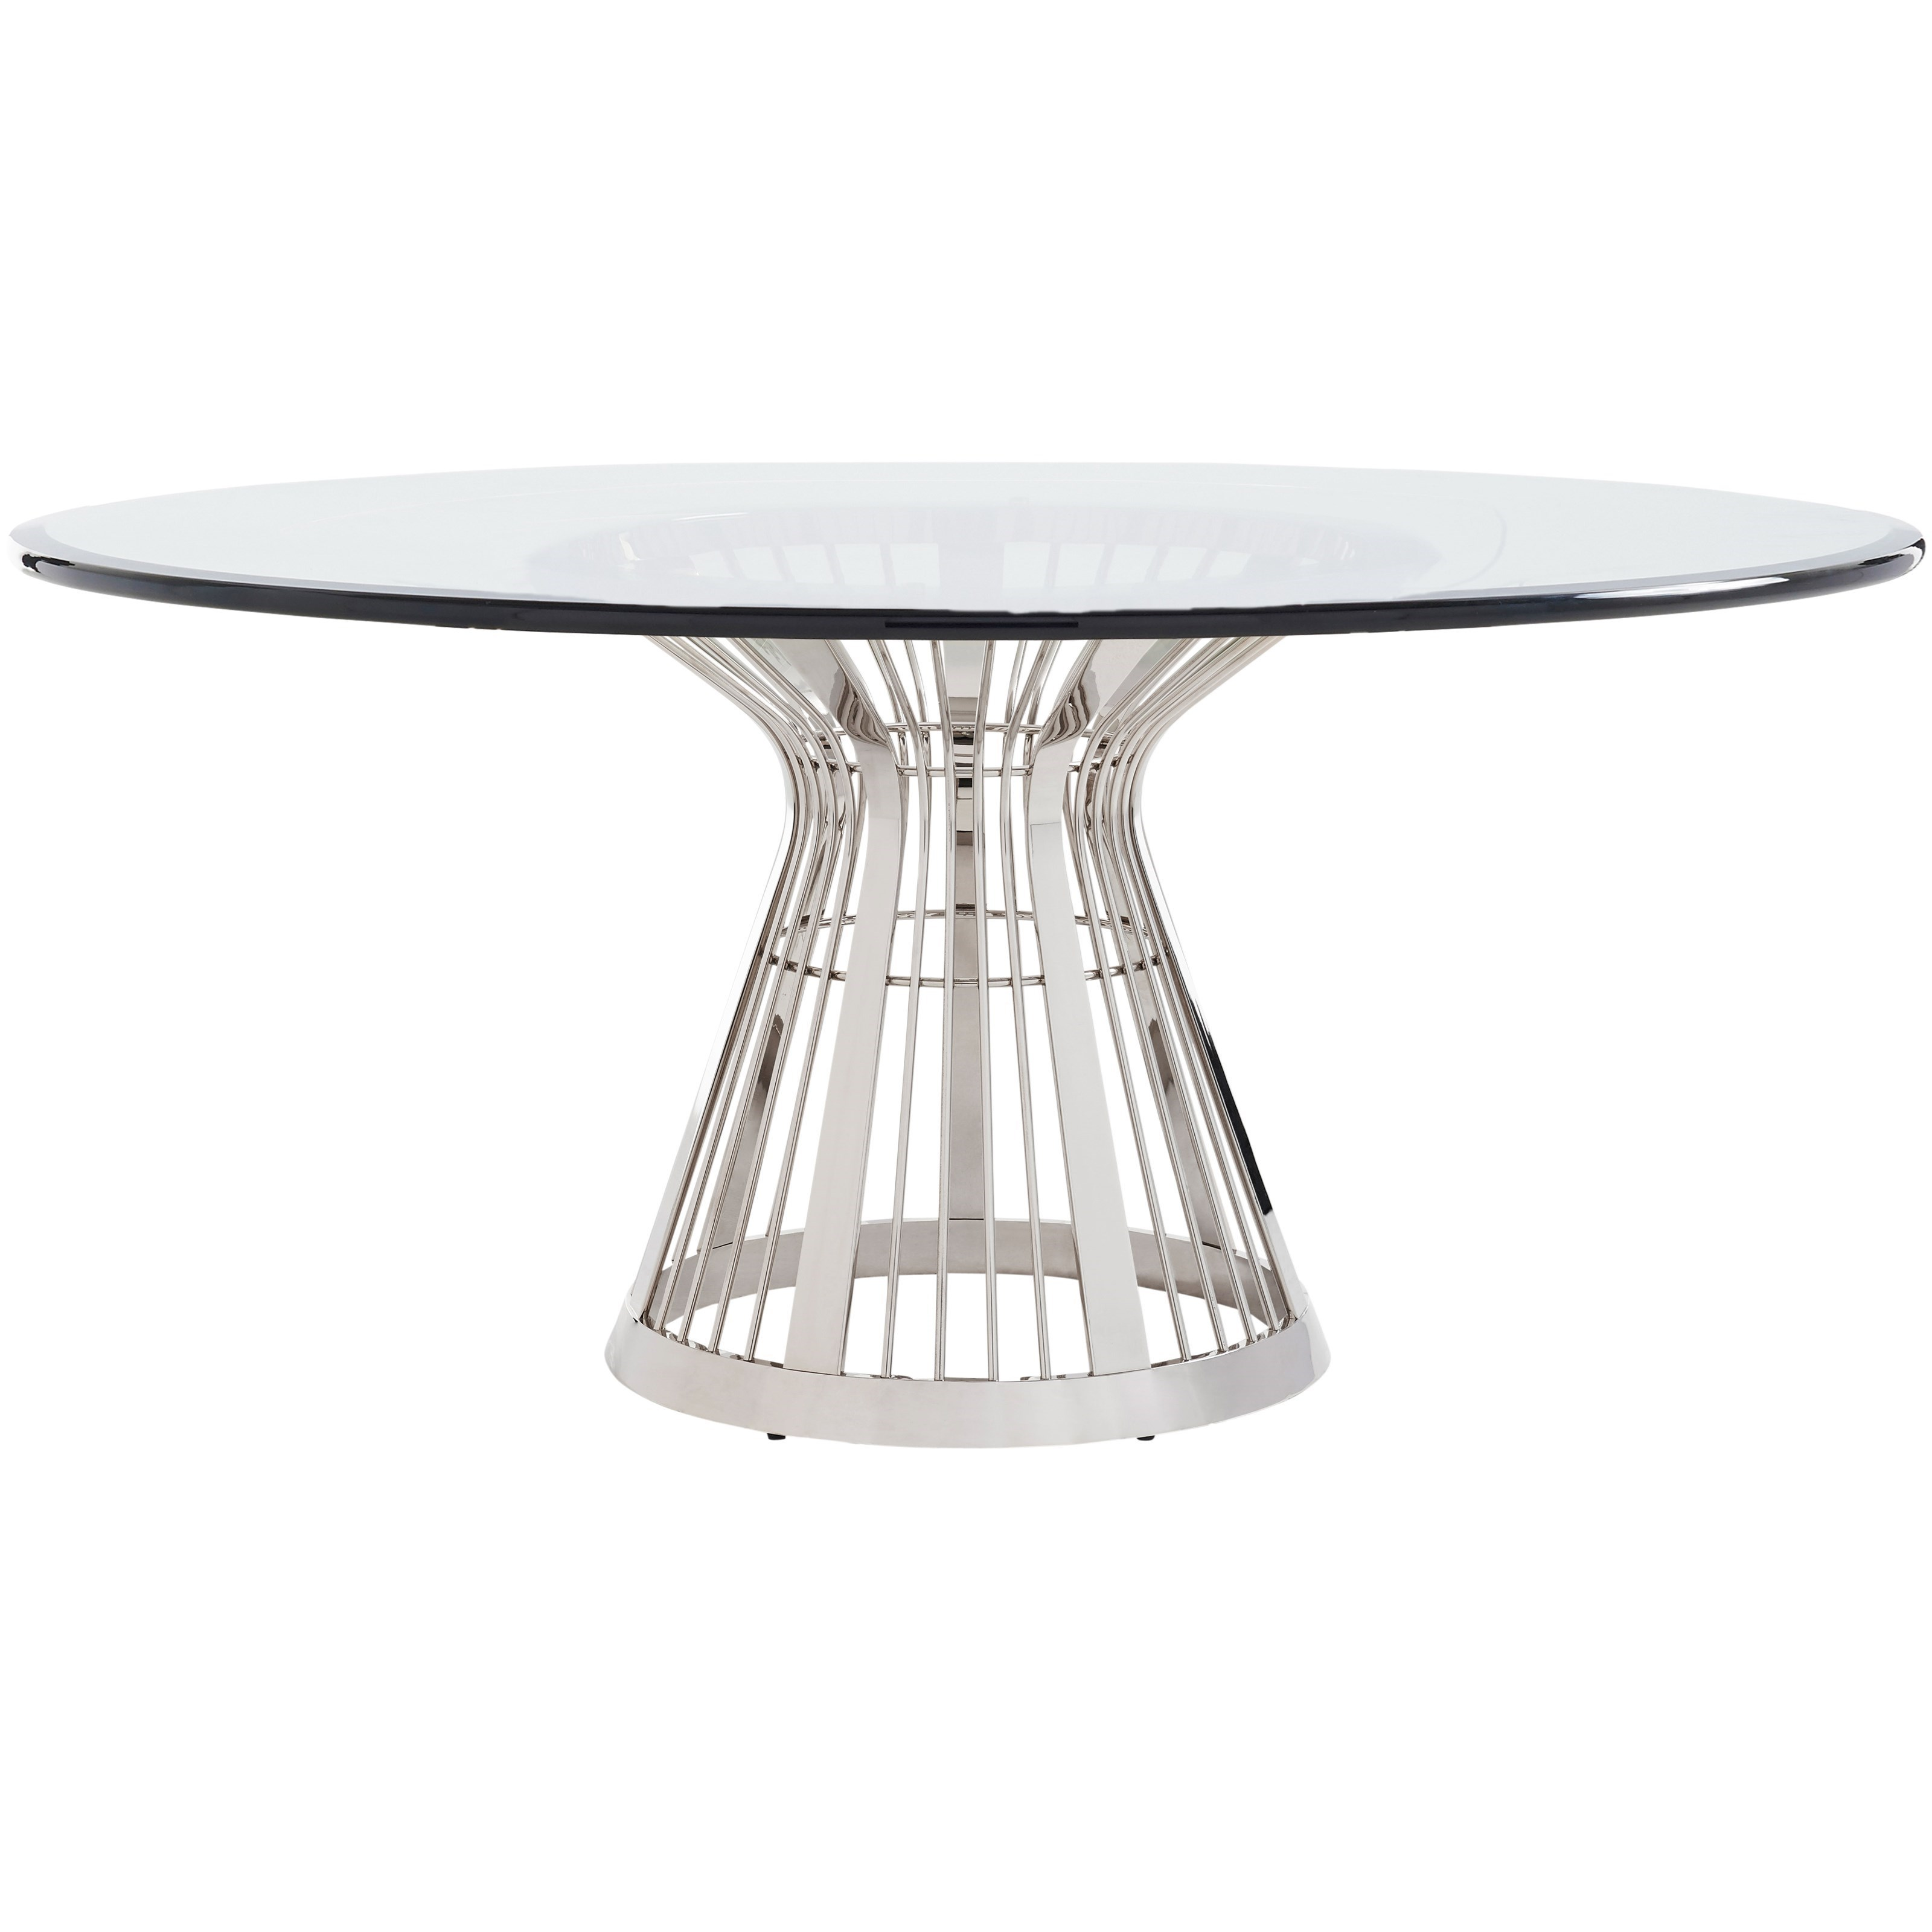 Ariana Riviera Stainless Dining Table With 72 Inch  by Lexington at Johnny Janosik